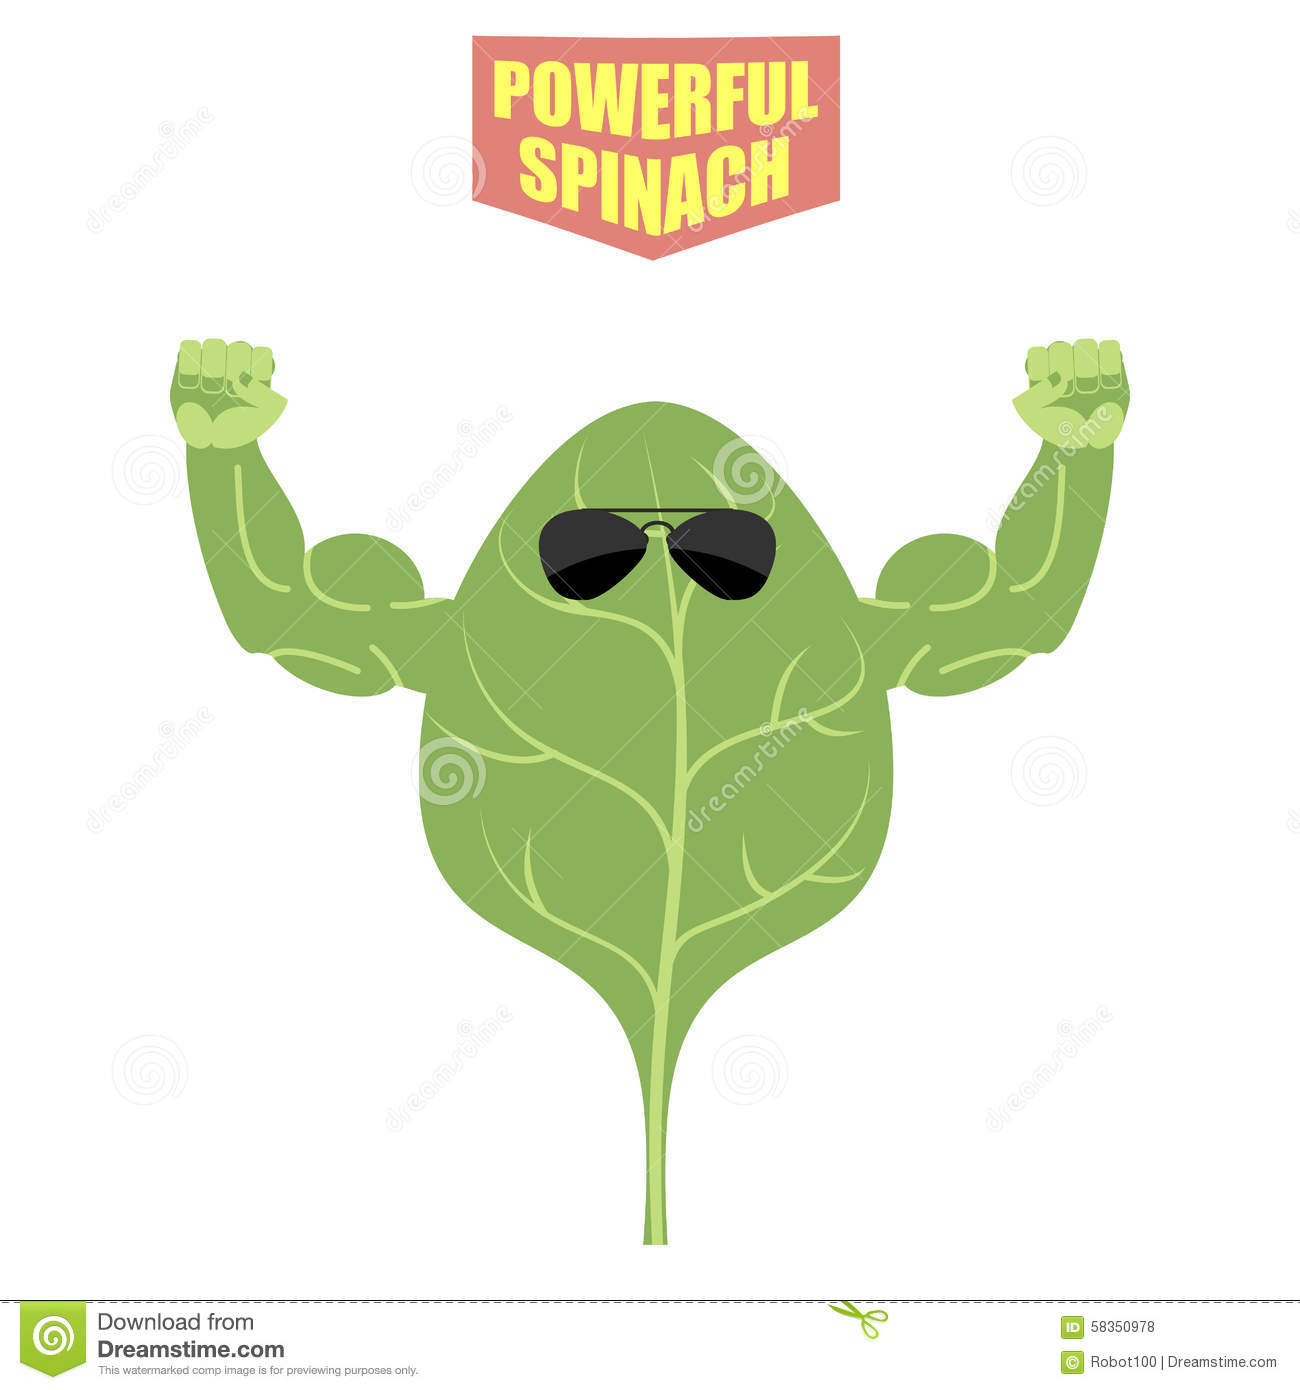 Powerful Spinach A Strong Plant With Big Muscles Green Fresh Stock